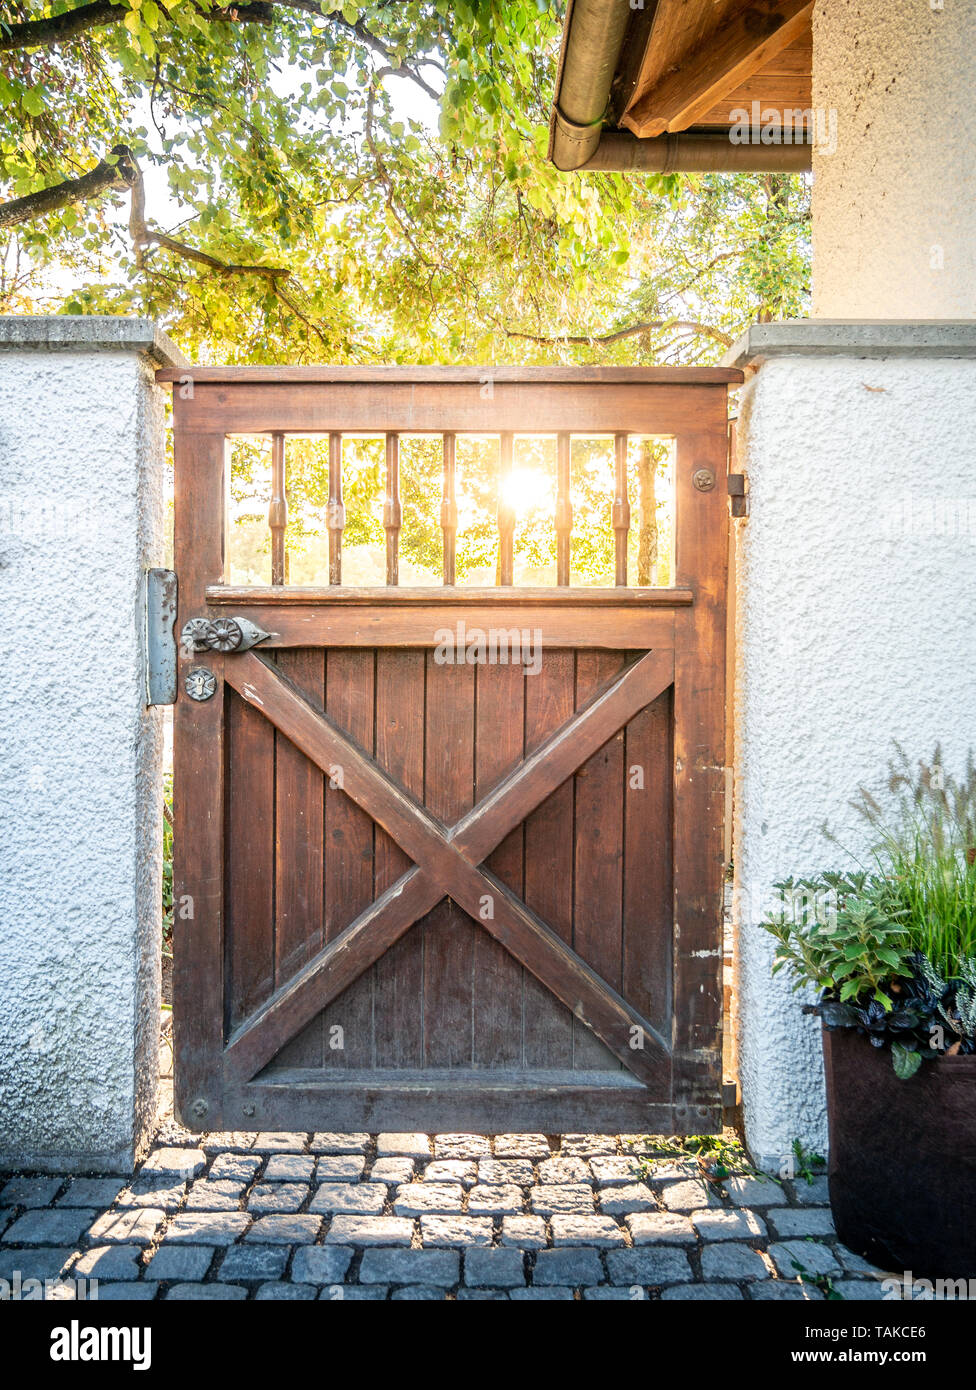 Image of wooden gate with sun rays in the background - Stock Image